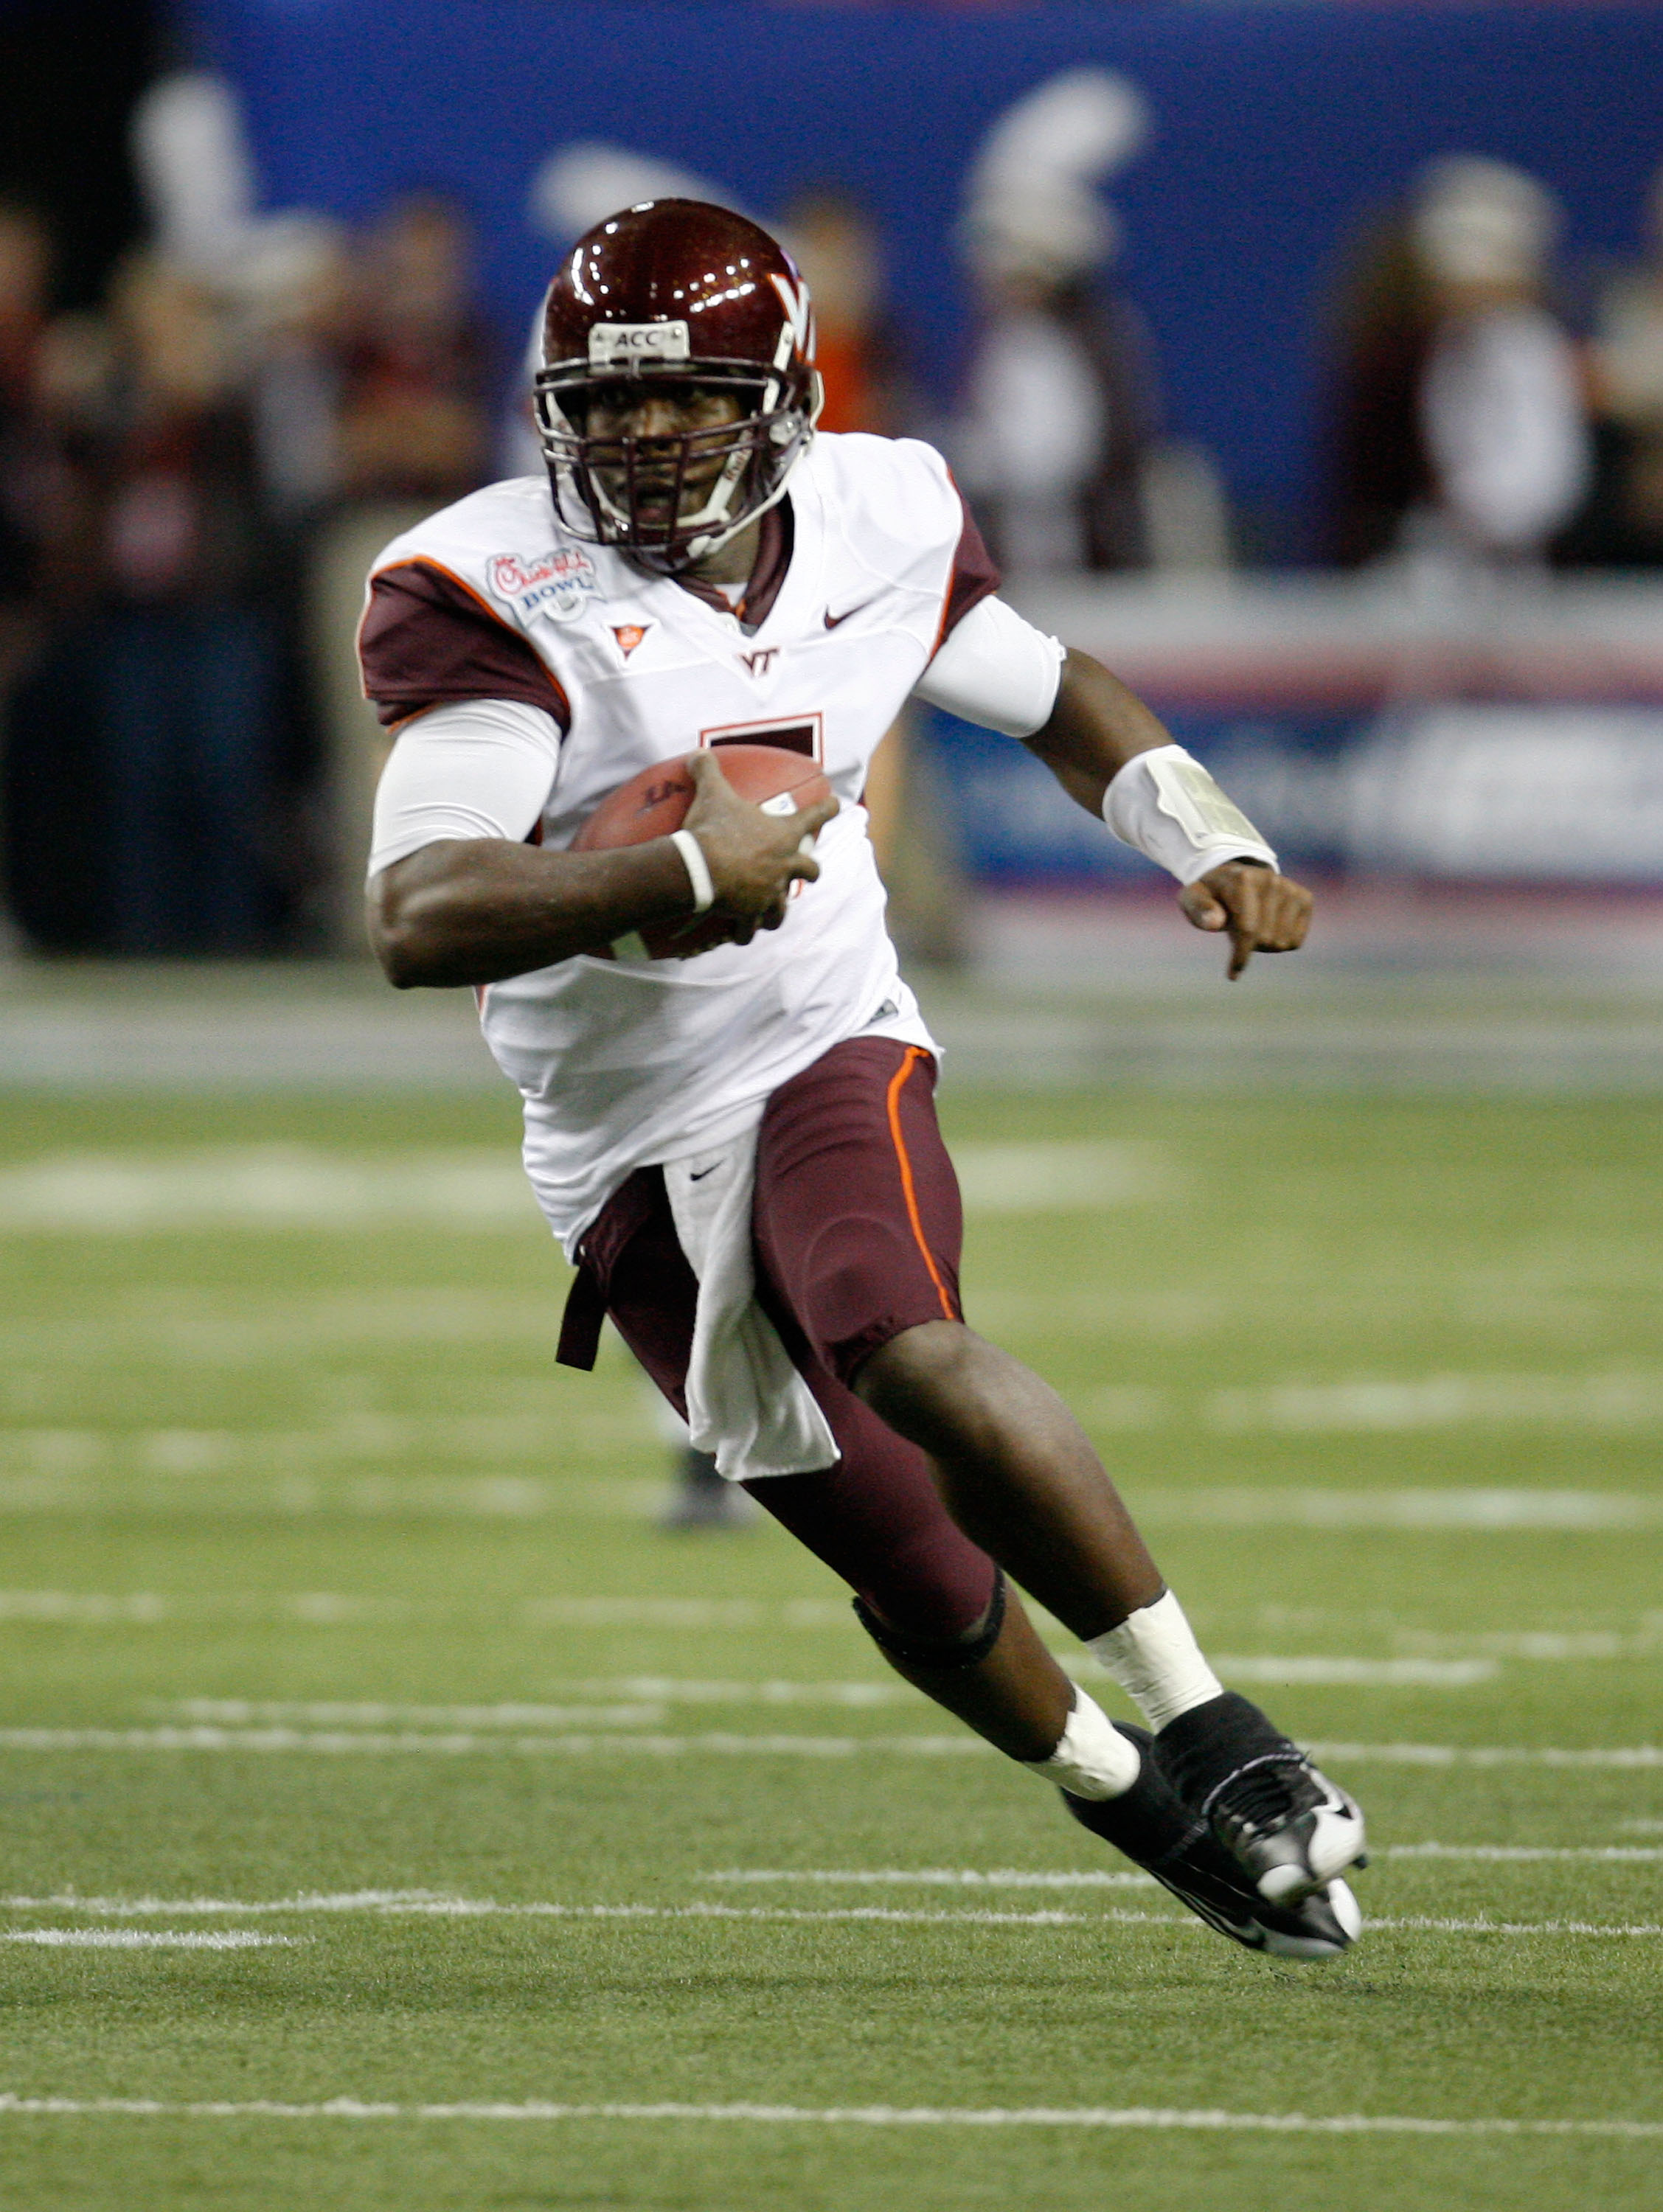 BLACKSBURG, VA - OCTOBER 29:  Quarterback Tyrod Taylor #5 of the Virginia Tech University Hokies runs with the ball against the North Carolina Tar Heels during the fourth quarter of the game at Lane Stadium on October 29, 2009 in Blacksburg, Virginia.  (P